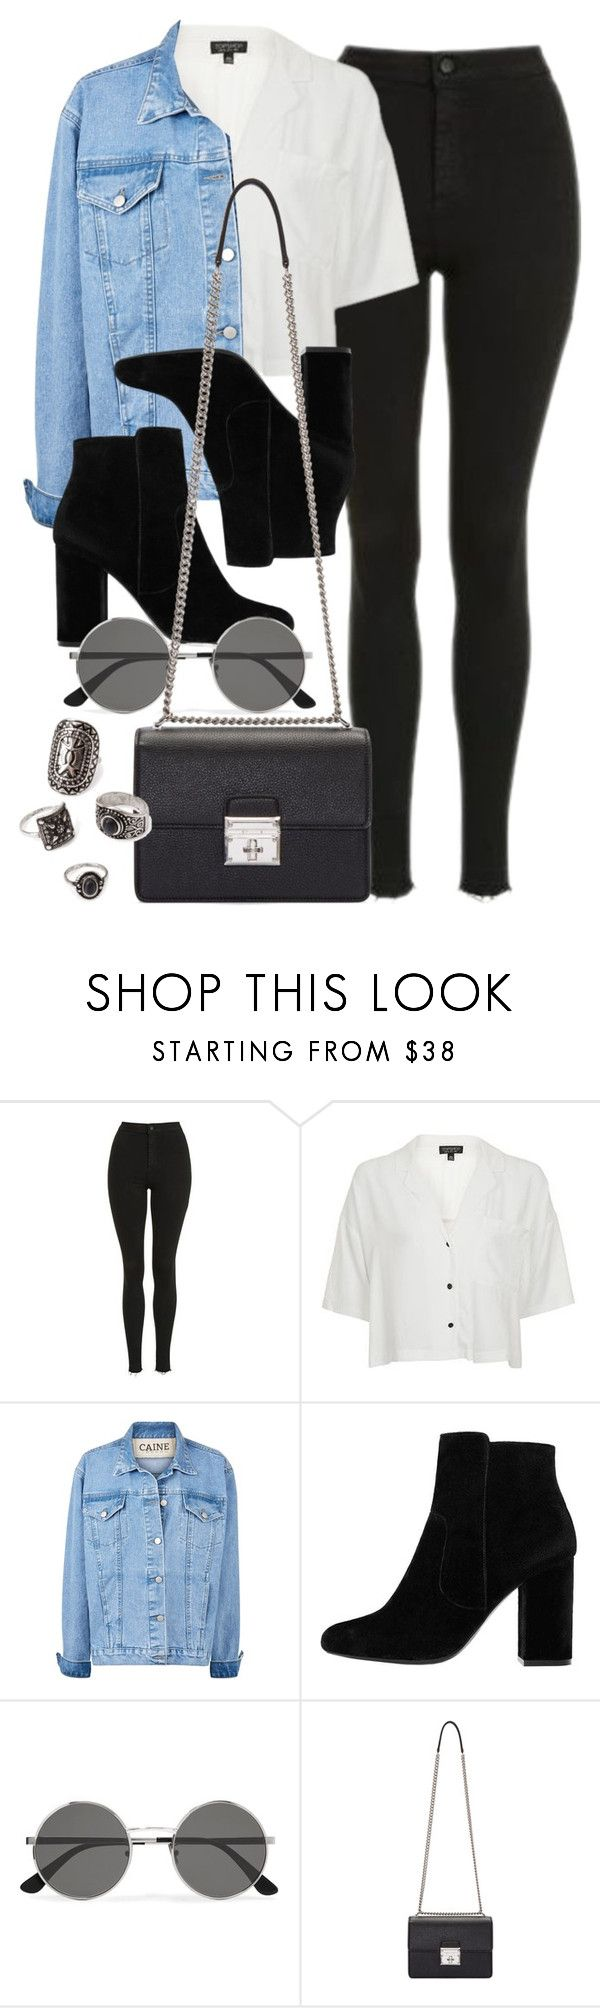 """""""Style #11629"""" by vany-alvarado ❤ liked on Polyvore featuring Topshop, MANGO, Yves Saint Laurent, Dolce&Gabbana and Forever 21"""